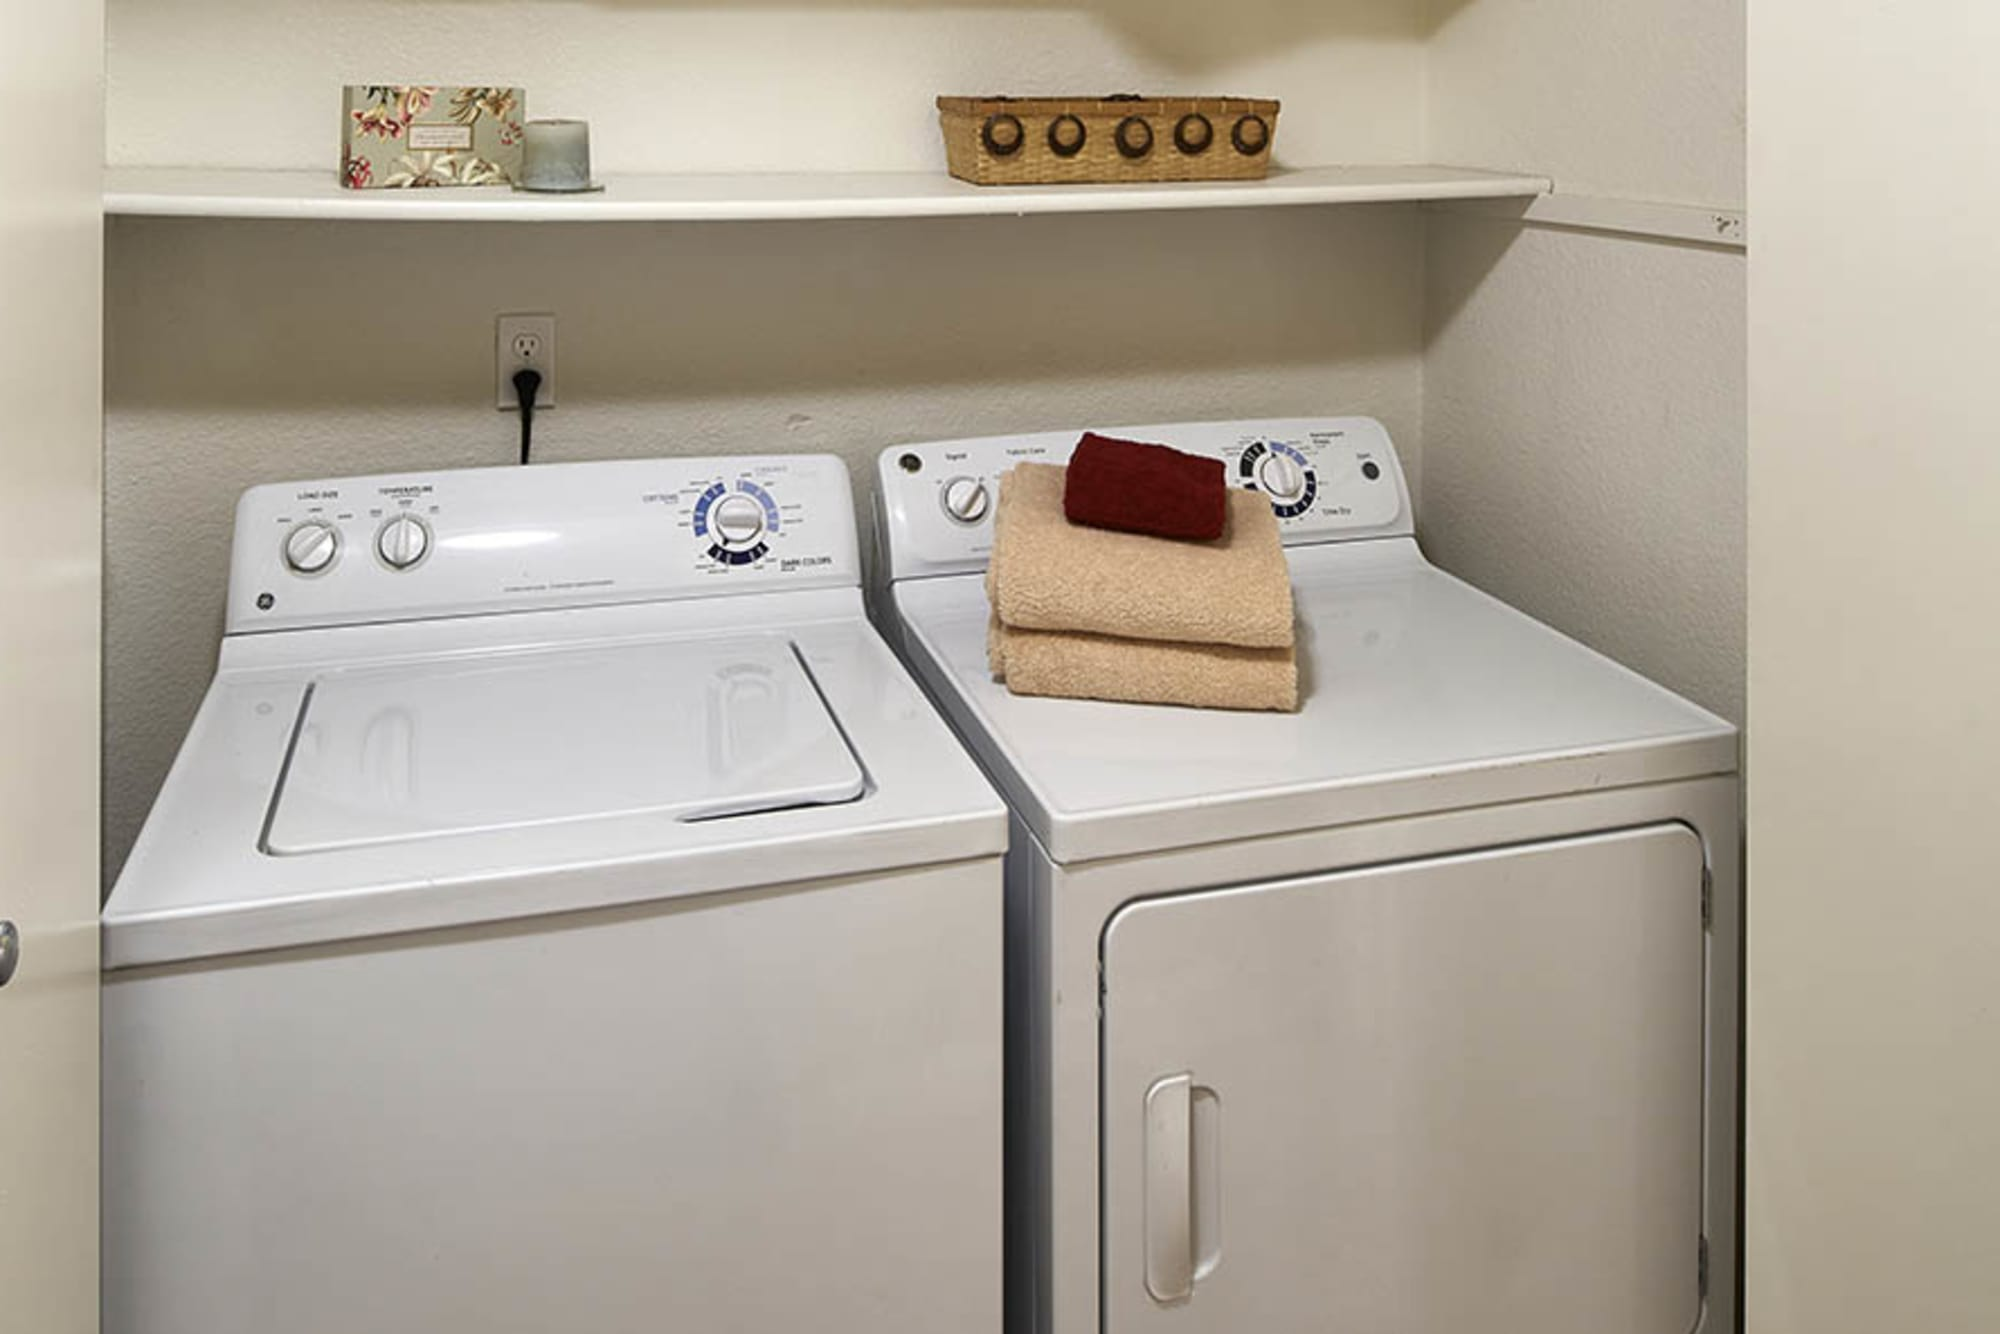 full sized Washer and dryer at Olin Fields Apartments